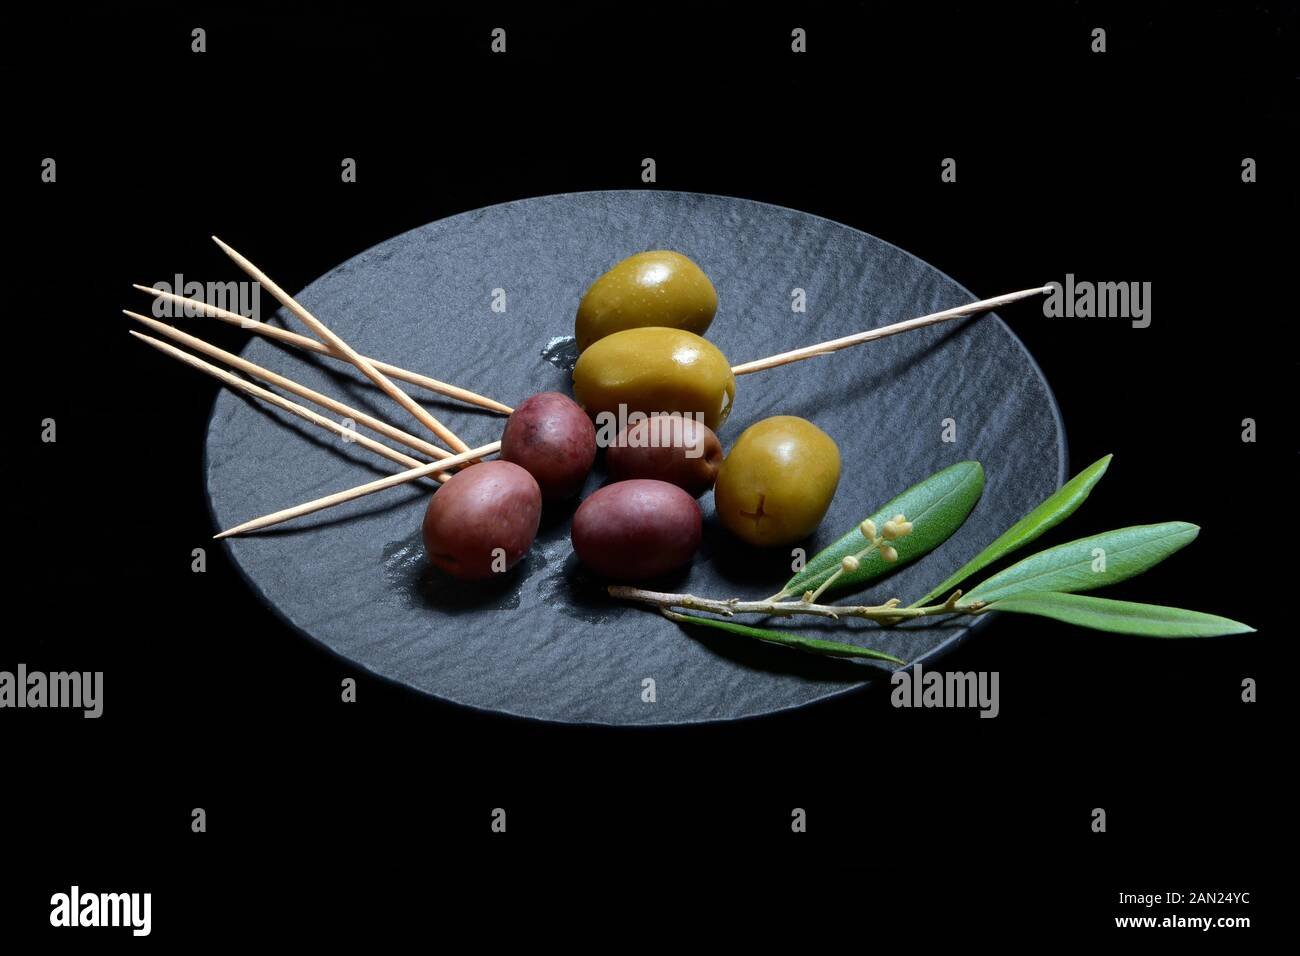 Black and green olives with toothpick on black plate, Germany Stock Photo